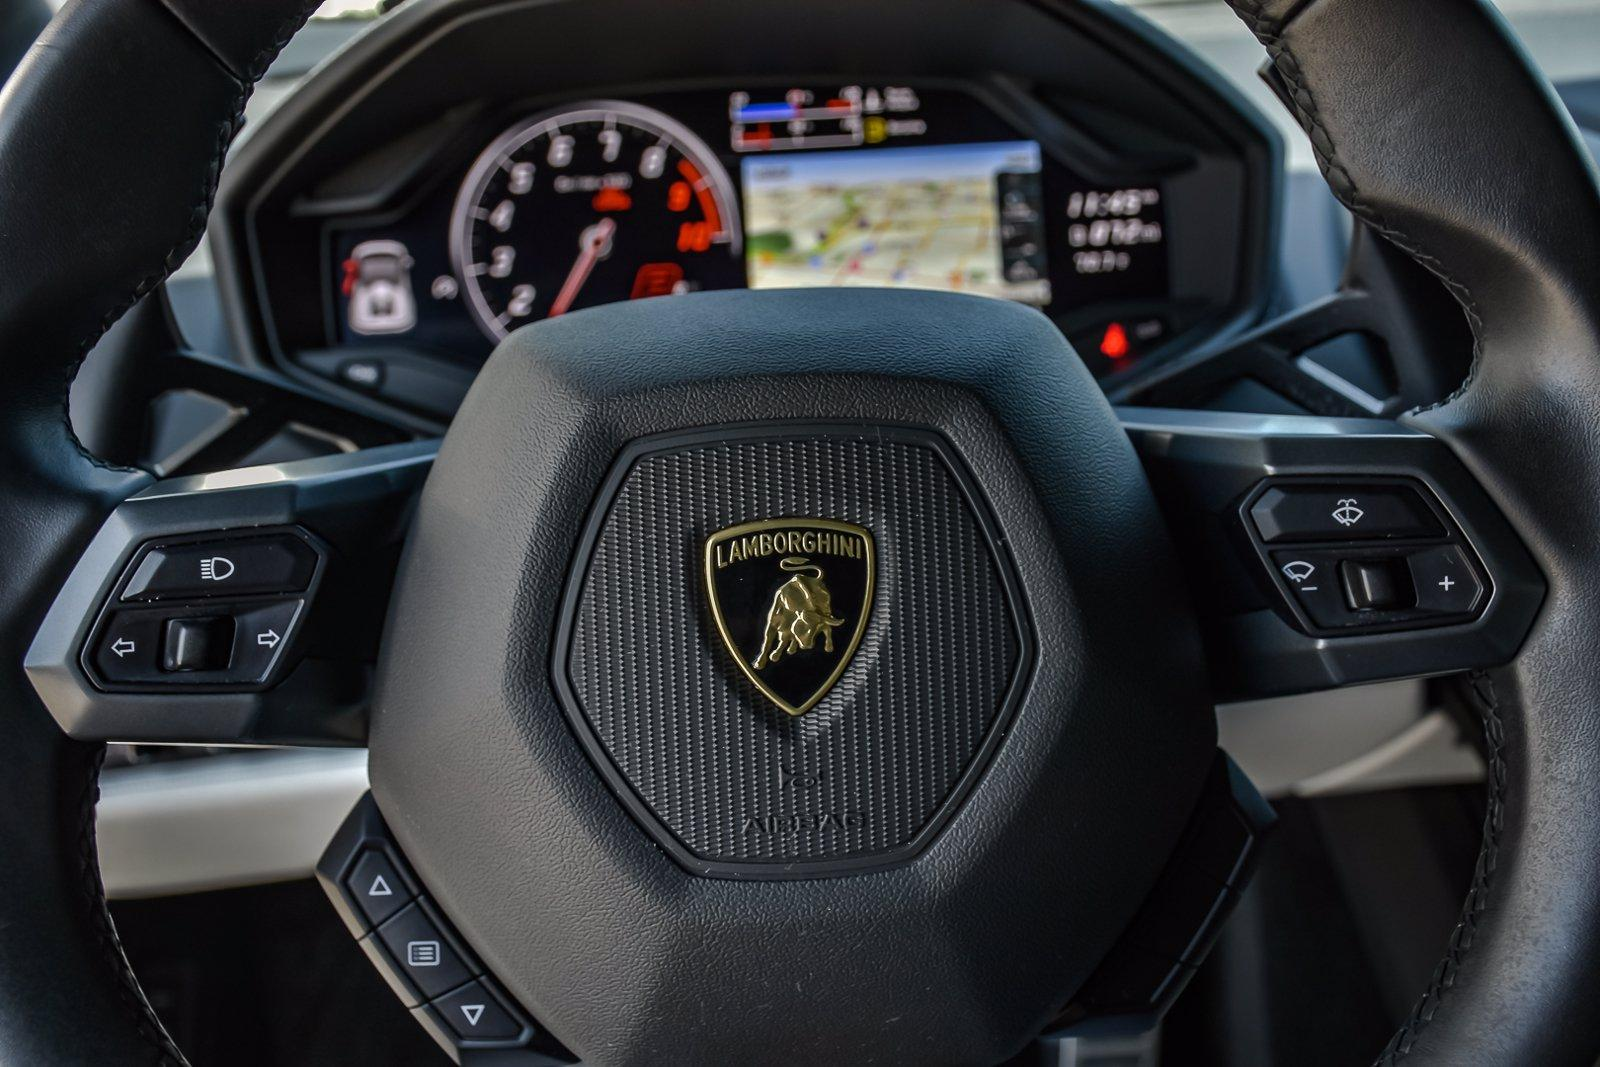 Used 2018 Lamborghini Huracan LP580-2 Spyder With Navigation | Downers Grove, IL